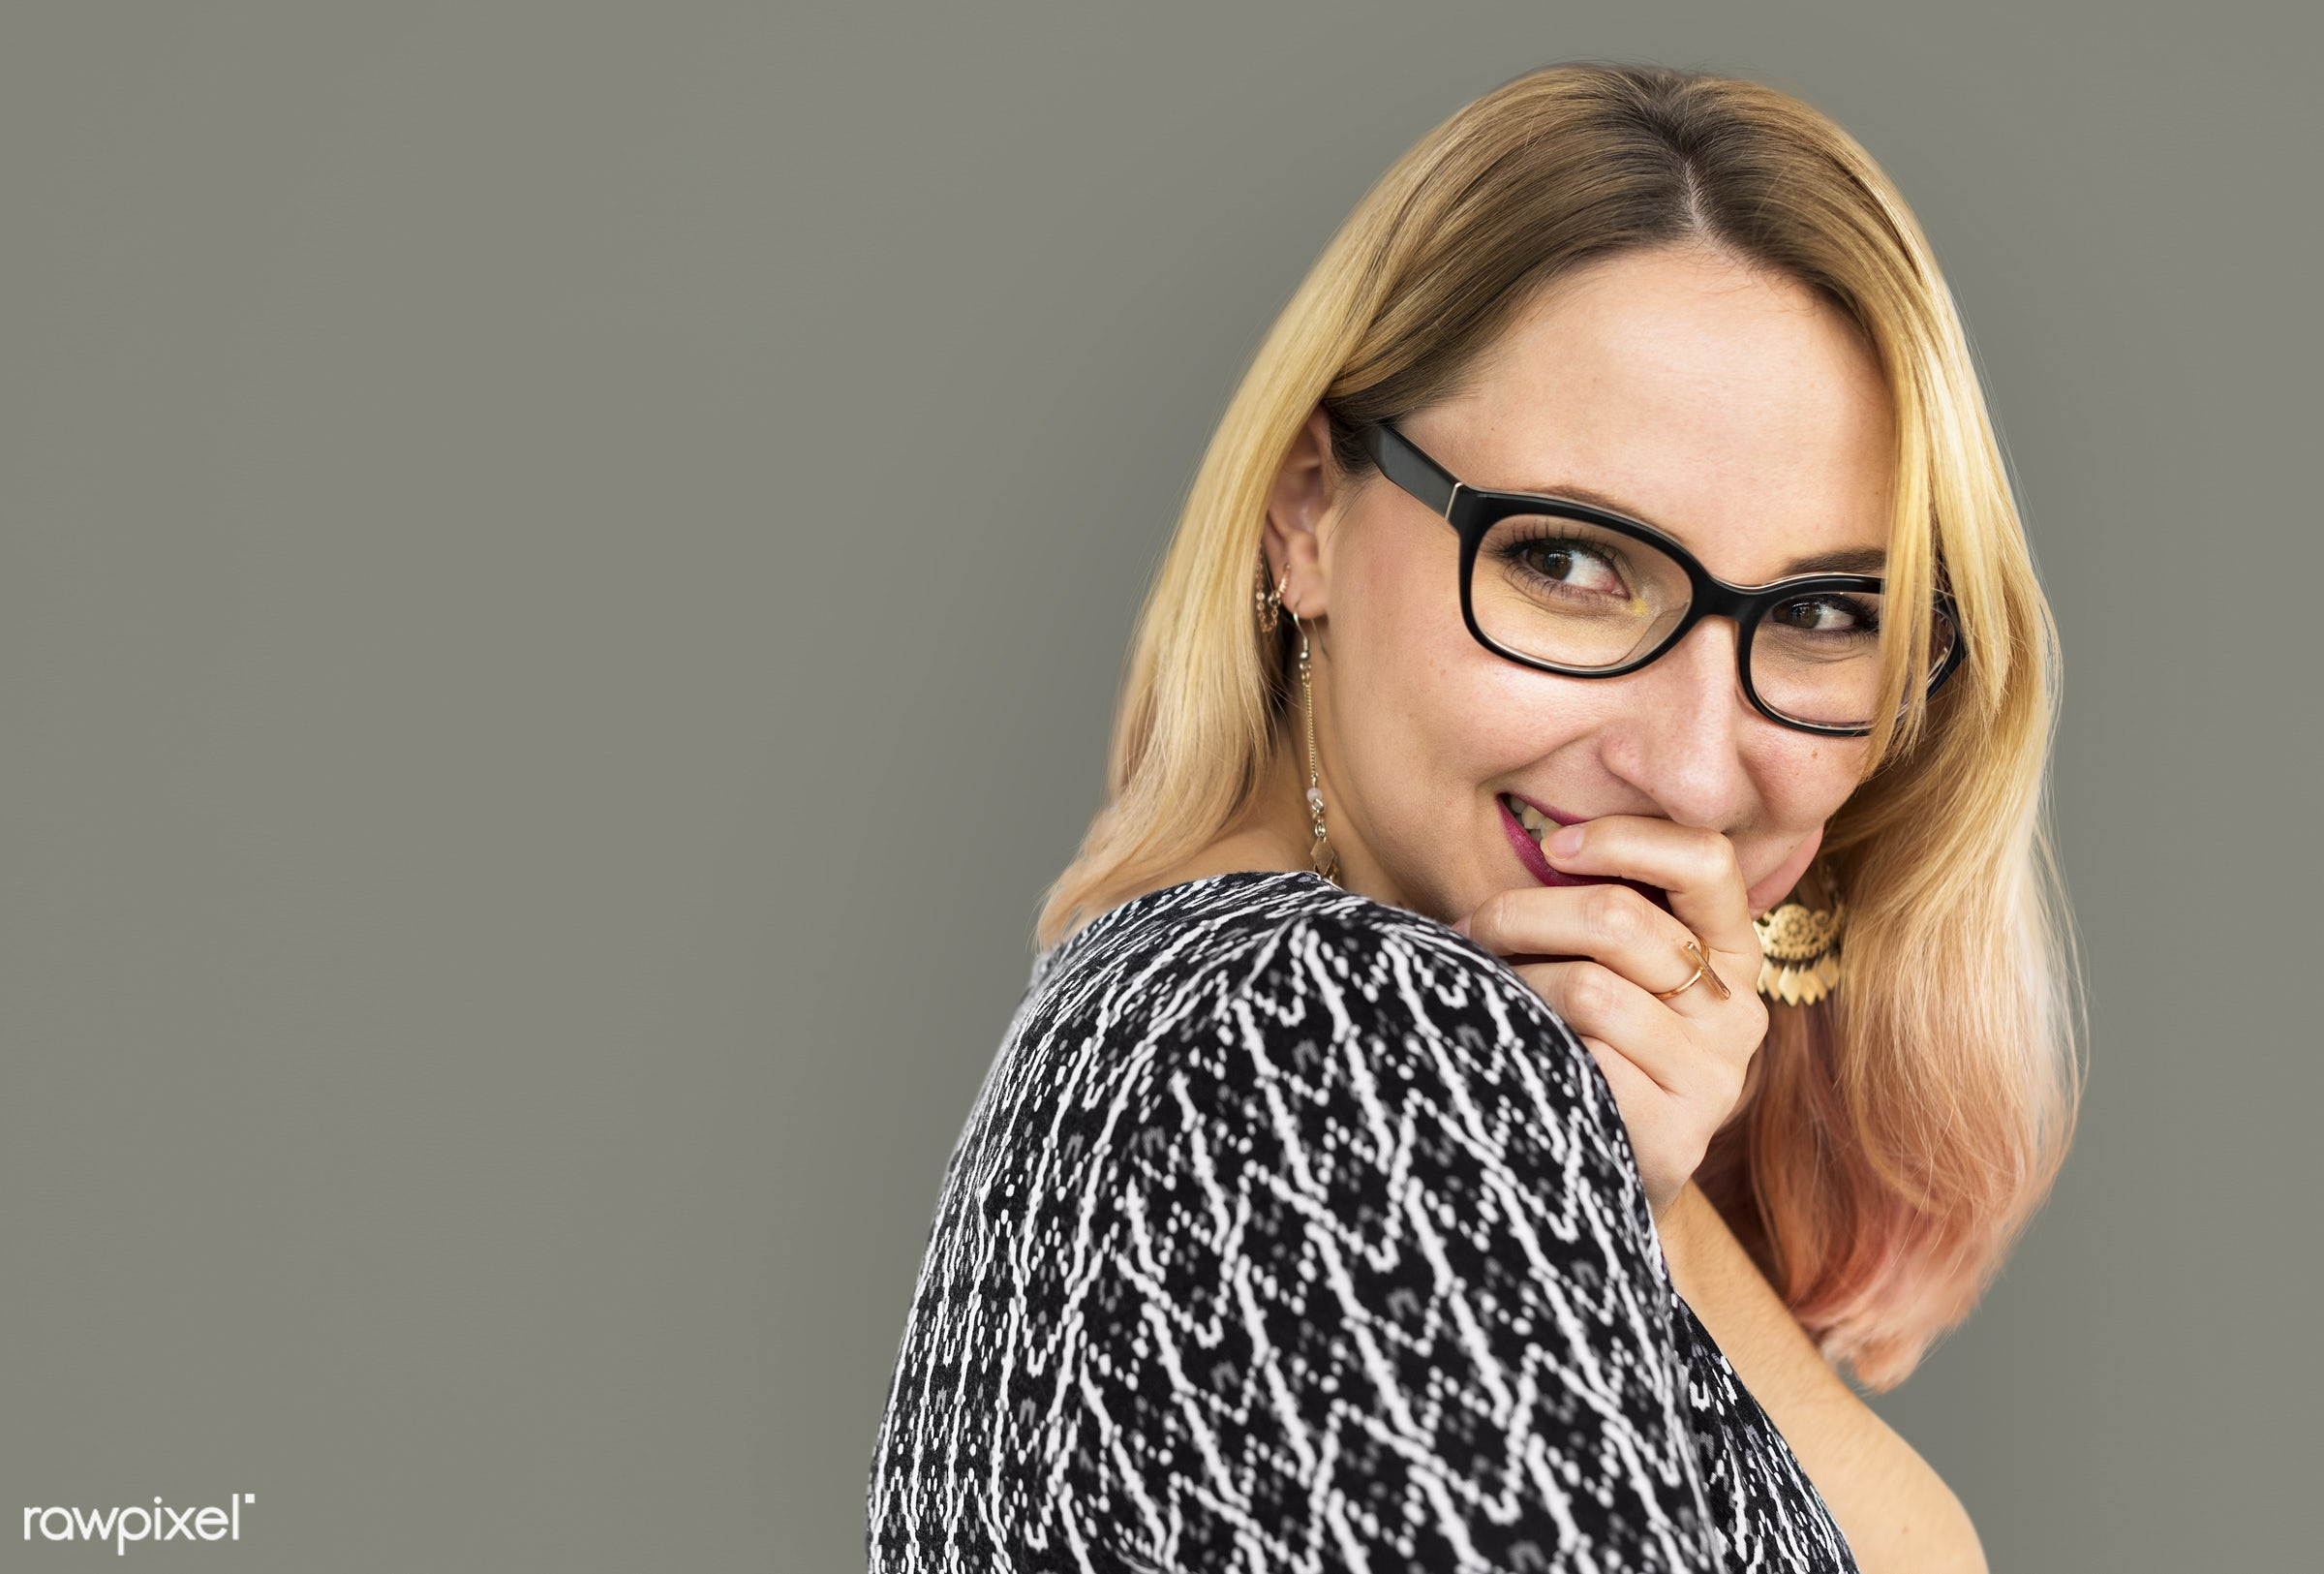 studio, expression, face, person, glasses, one, blond, cute, pretty, people, modern, laughing, girl, woman, happy,...